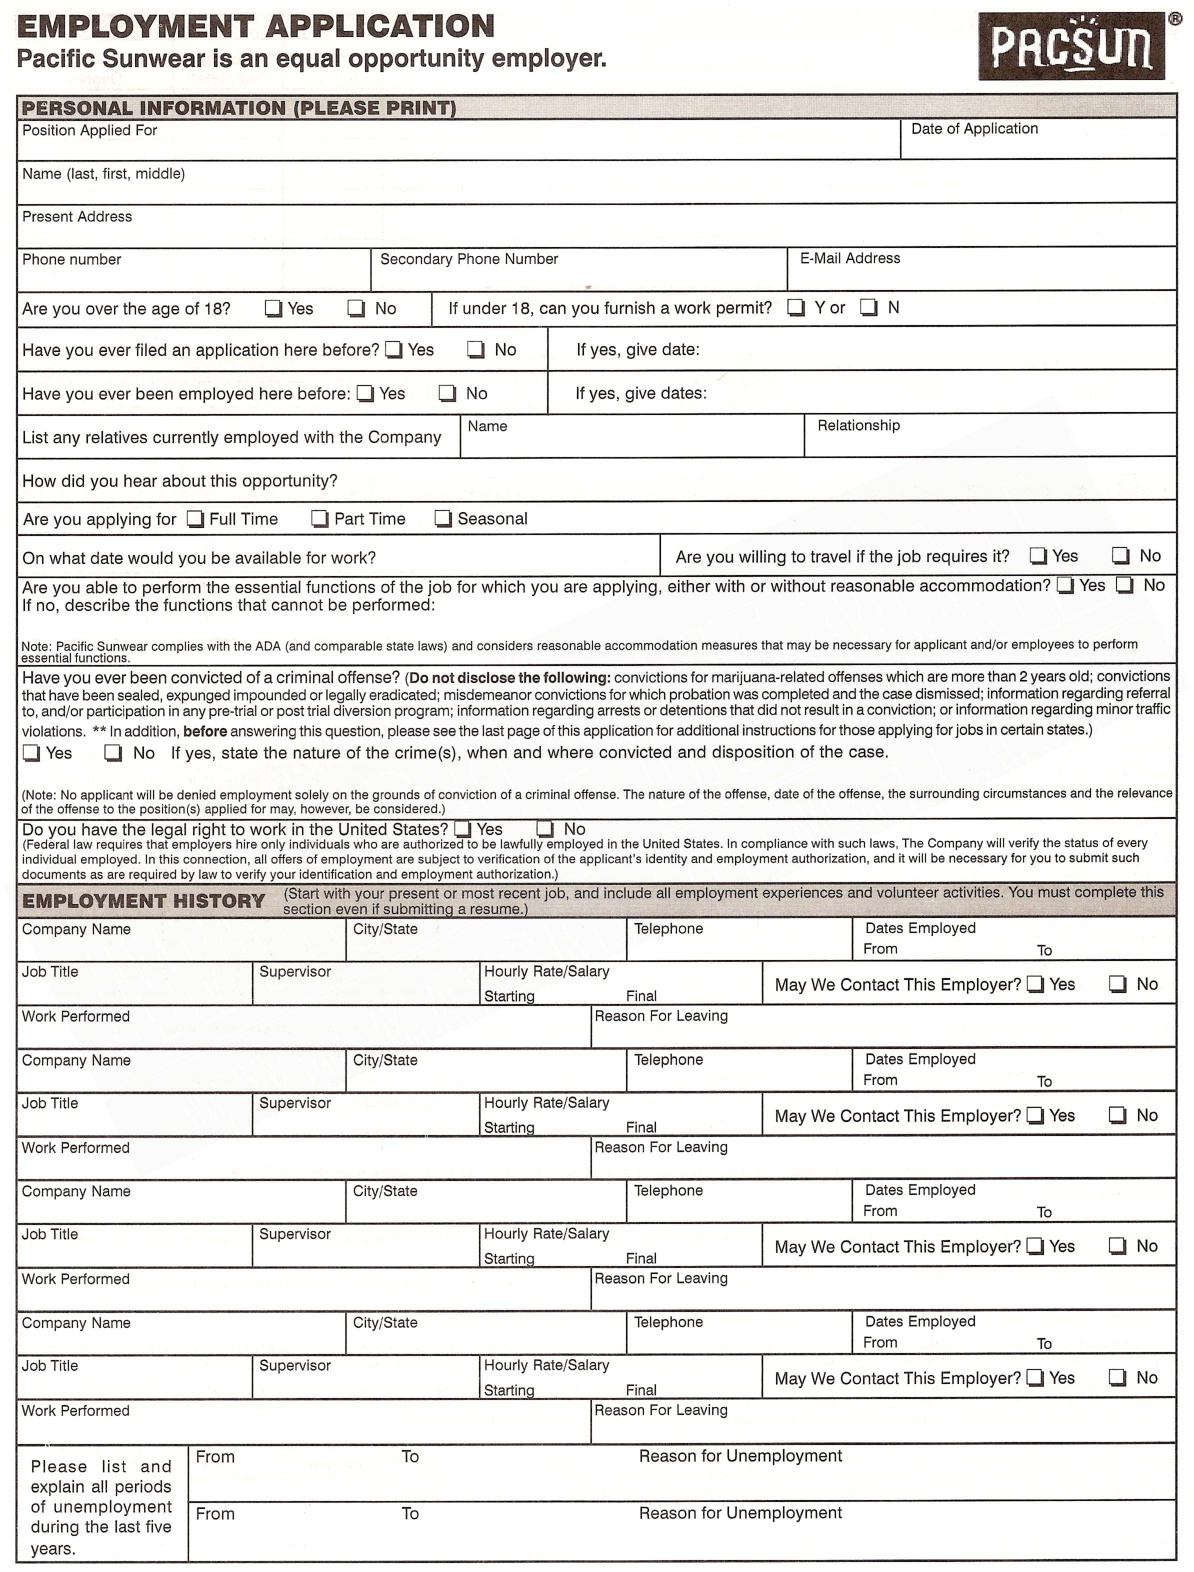 pacsun application Pacsun employment application form